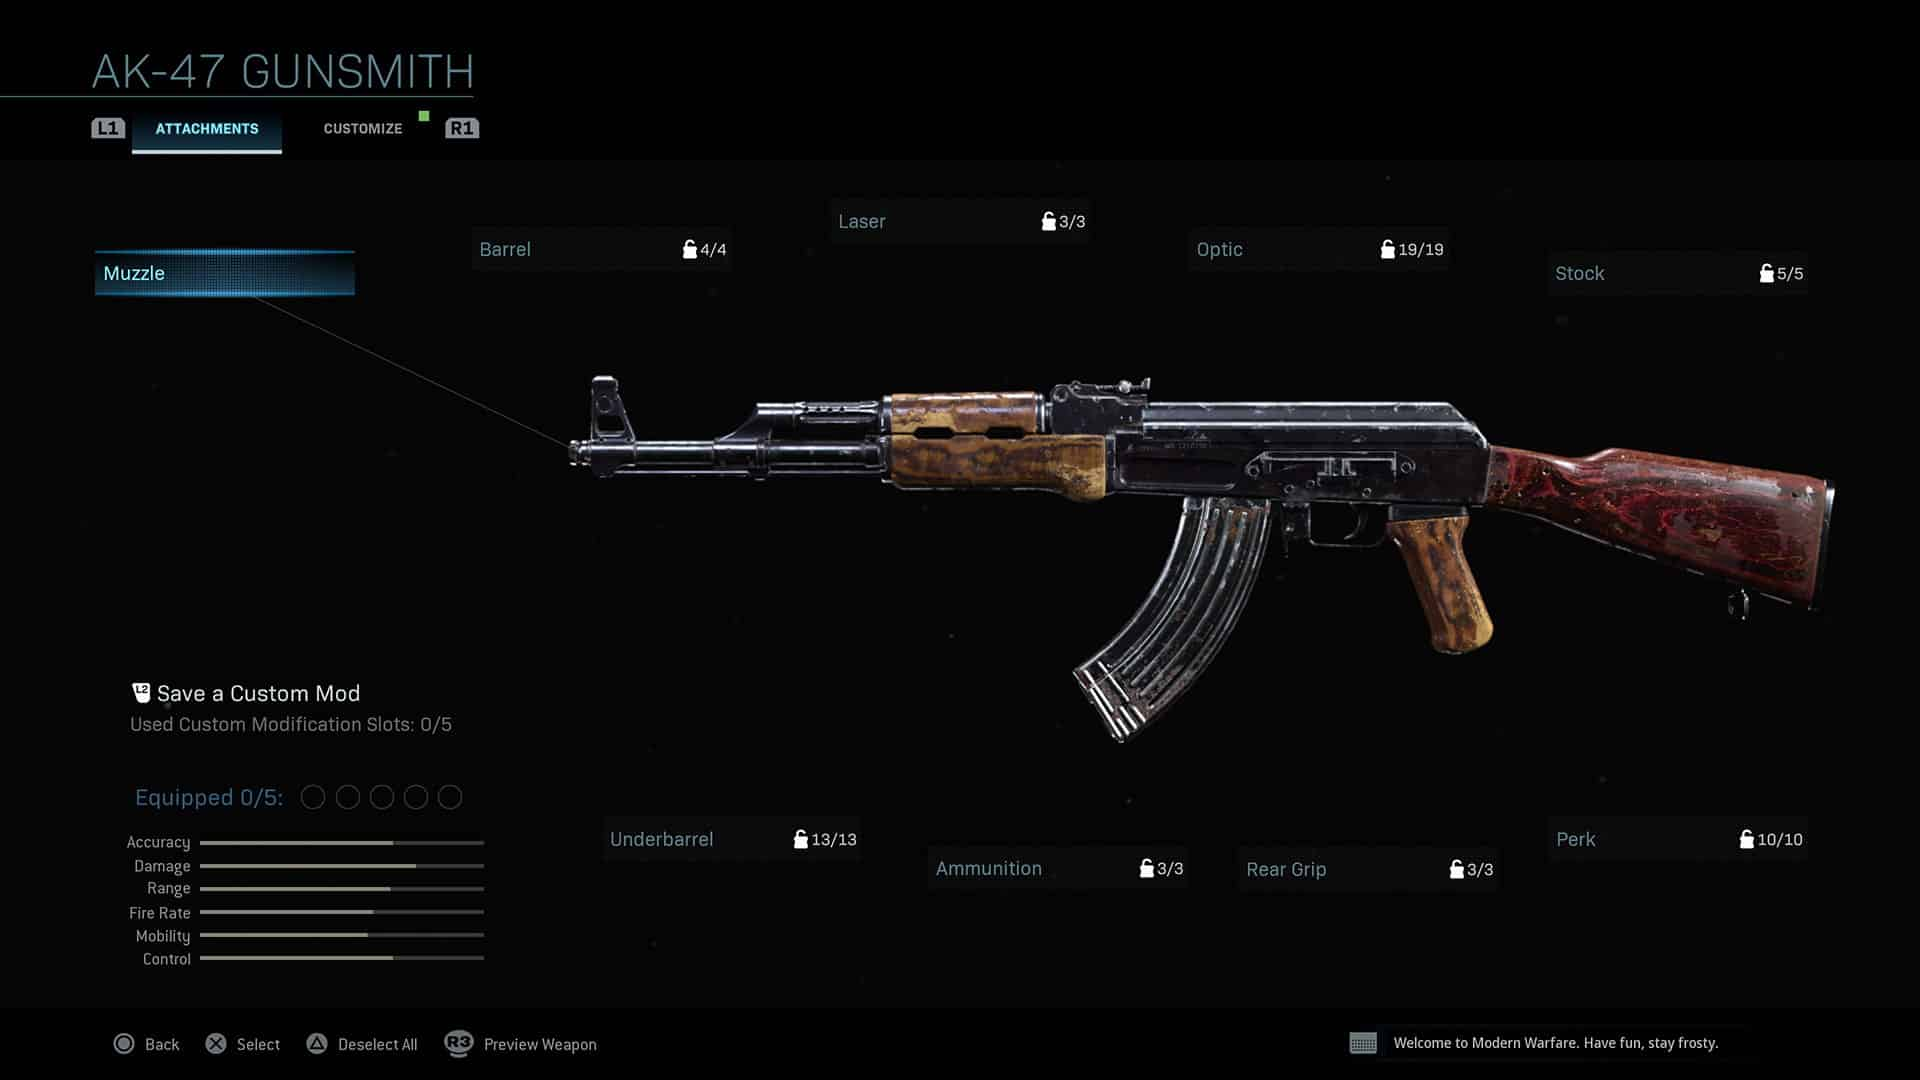 Fastest gun in warzone call of duty